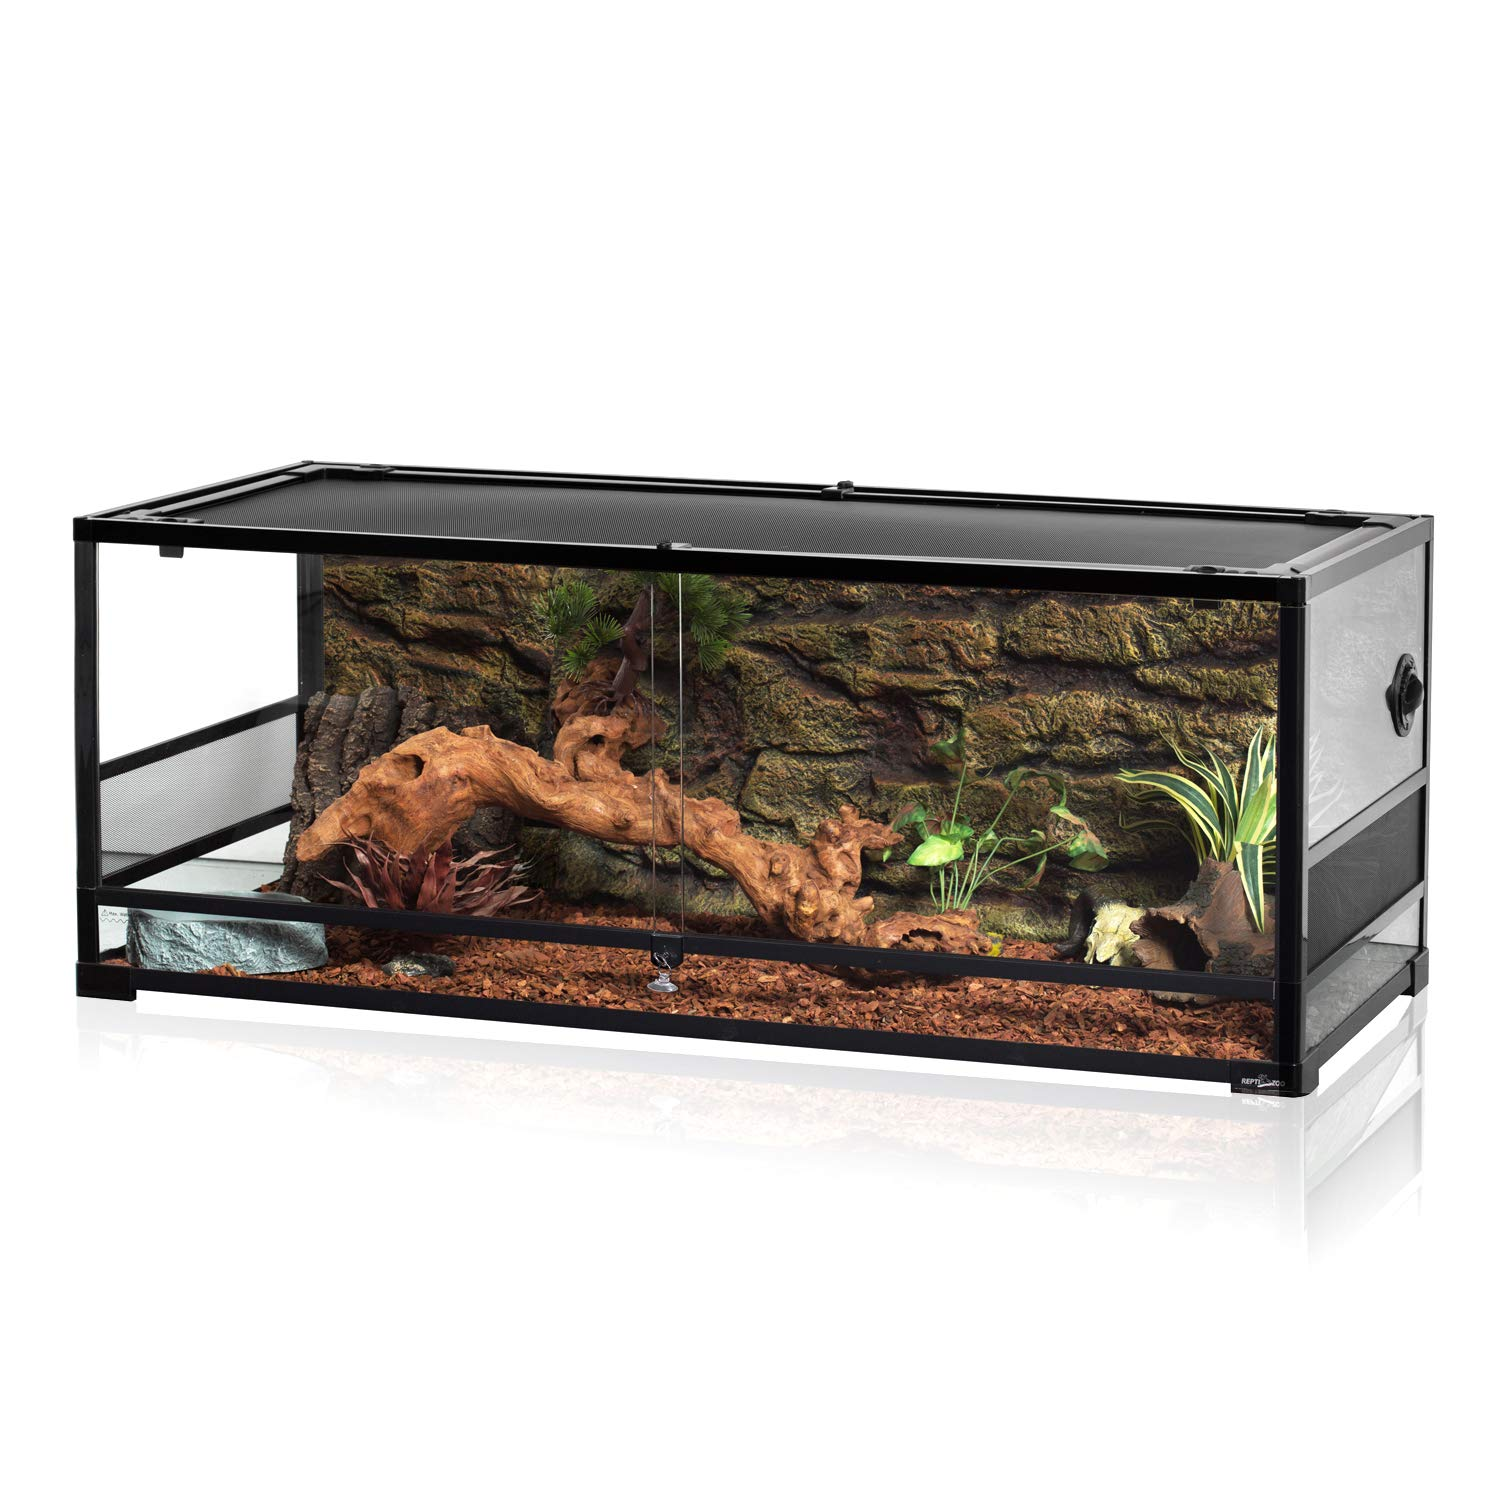 REPTI ZOO 67Gallon Reptile Large Terrarium Upgrade Glass Front Opening Tank Sliding Door with Screen Ventilation Reptile Terrarium About 48'' x 18'' x 18''(Knock-Down) by REPTI ZOO